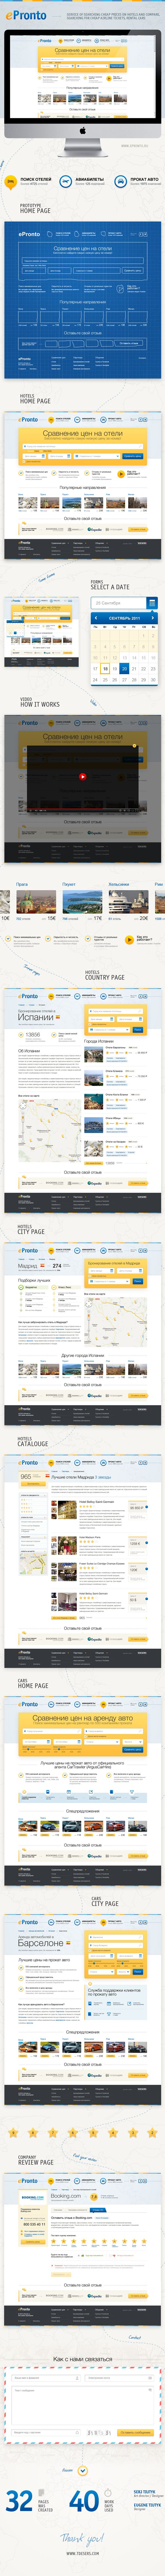 EPronto by tdeser , via Behance *** Service of searching cheap prices on hotels and compare,   searching for cheap airline tickets, rental cars